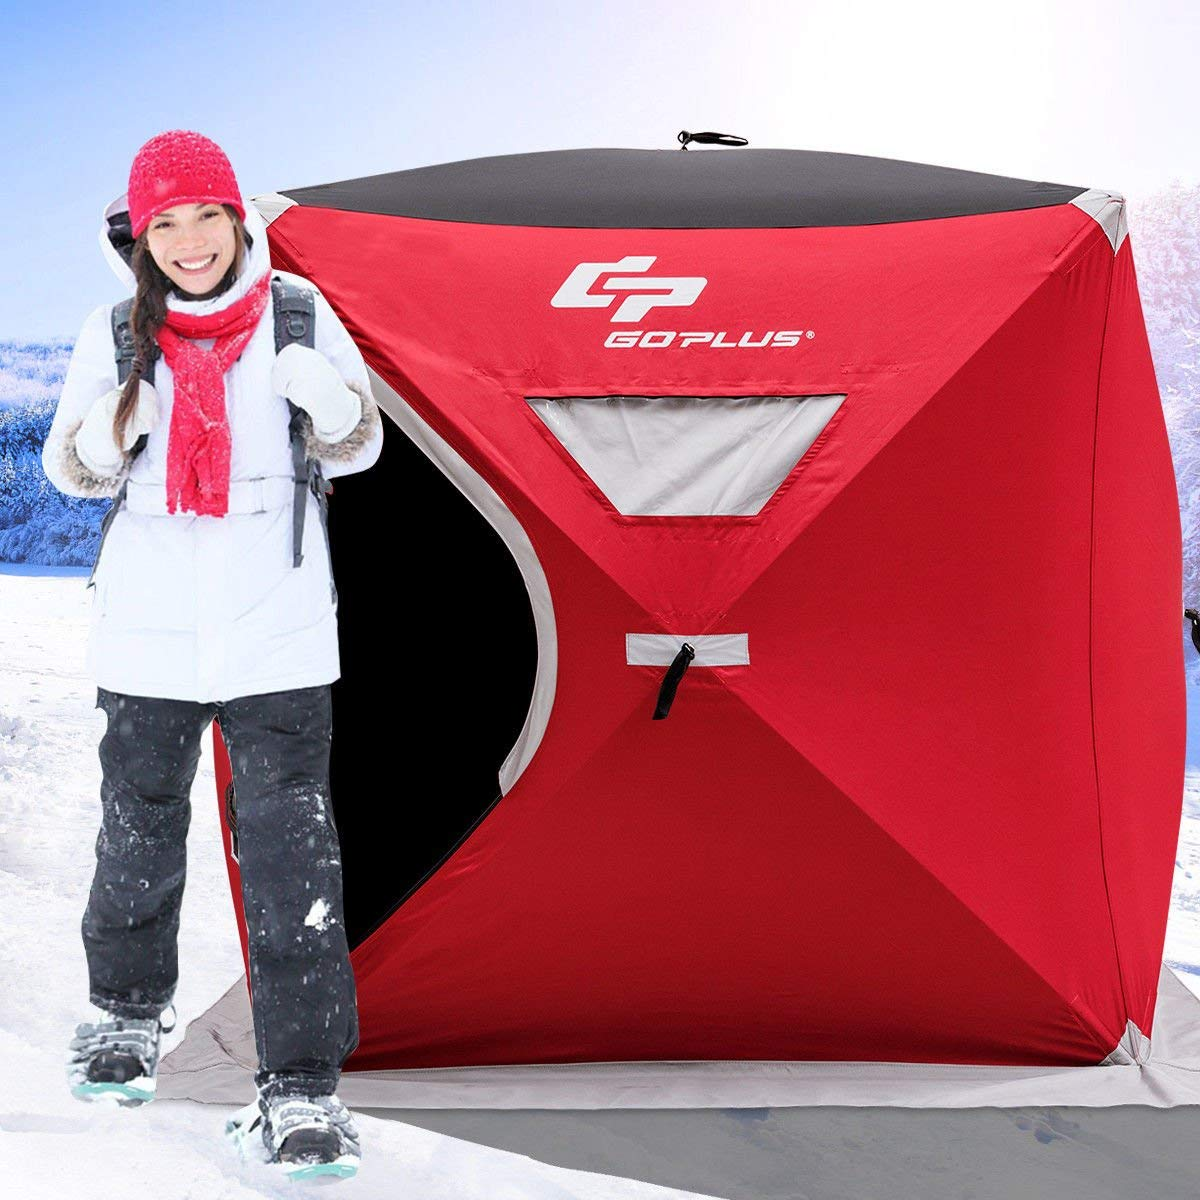 Goplus Pop-up Ice Fishing tent